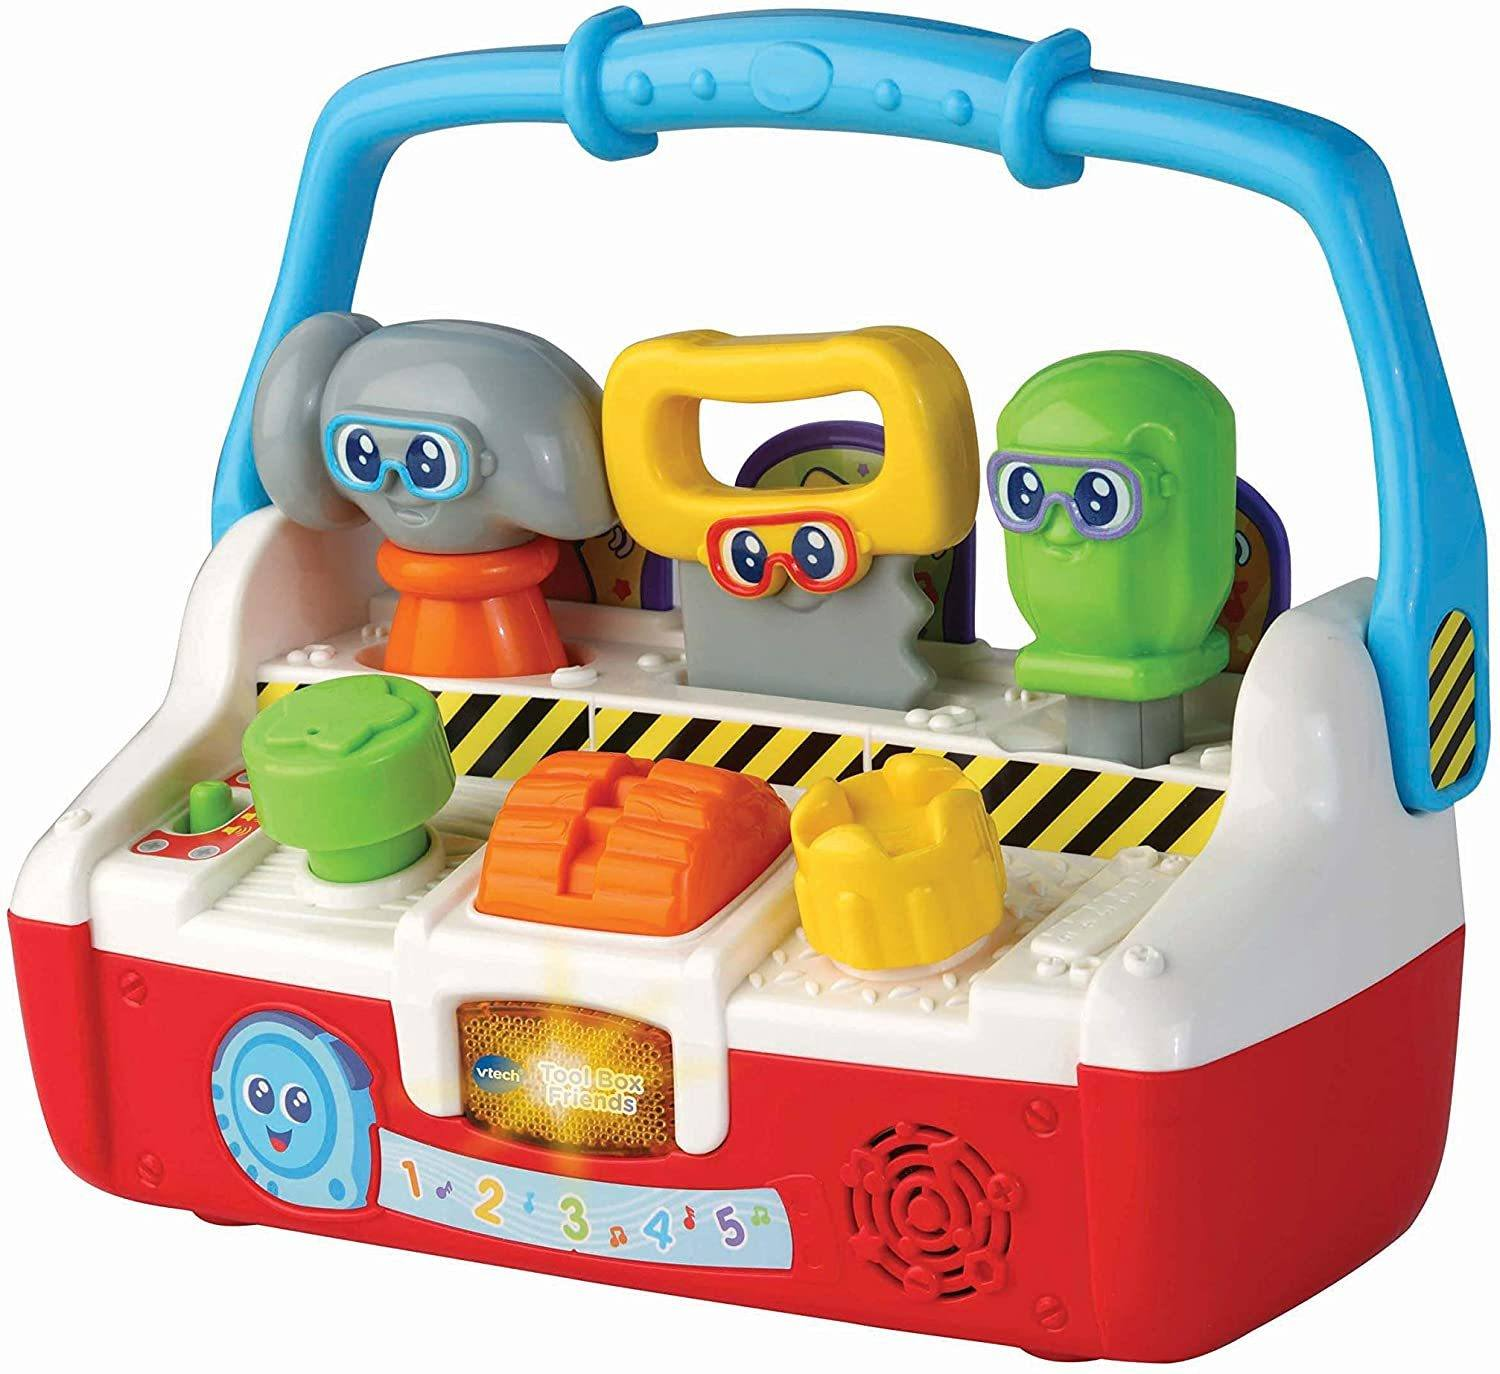 VTech Tool Box Friends Baby Musical Toy - TOYBOX Toy Shop